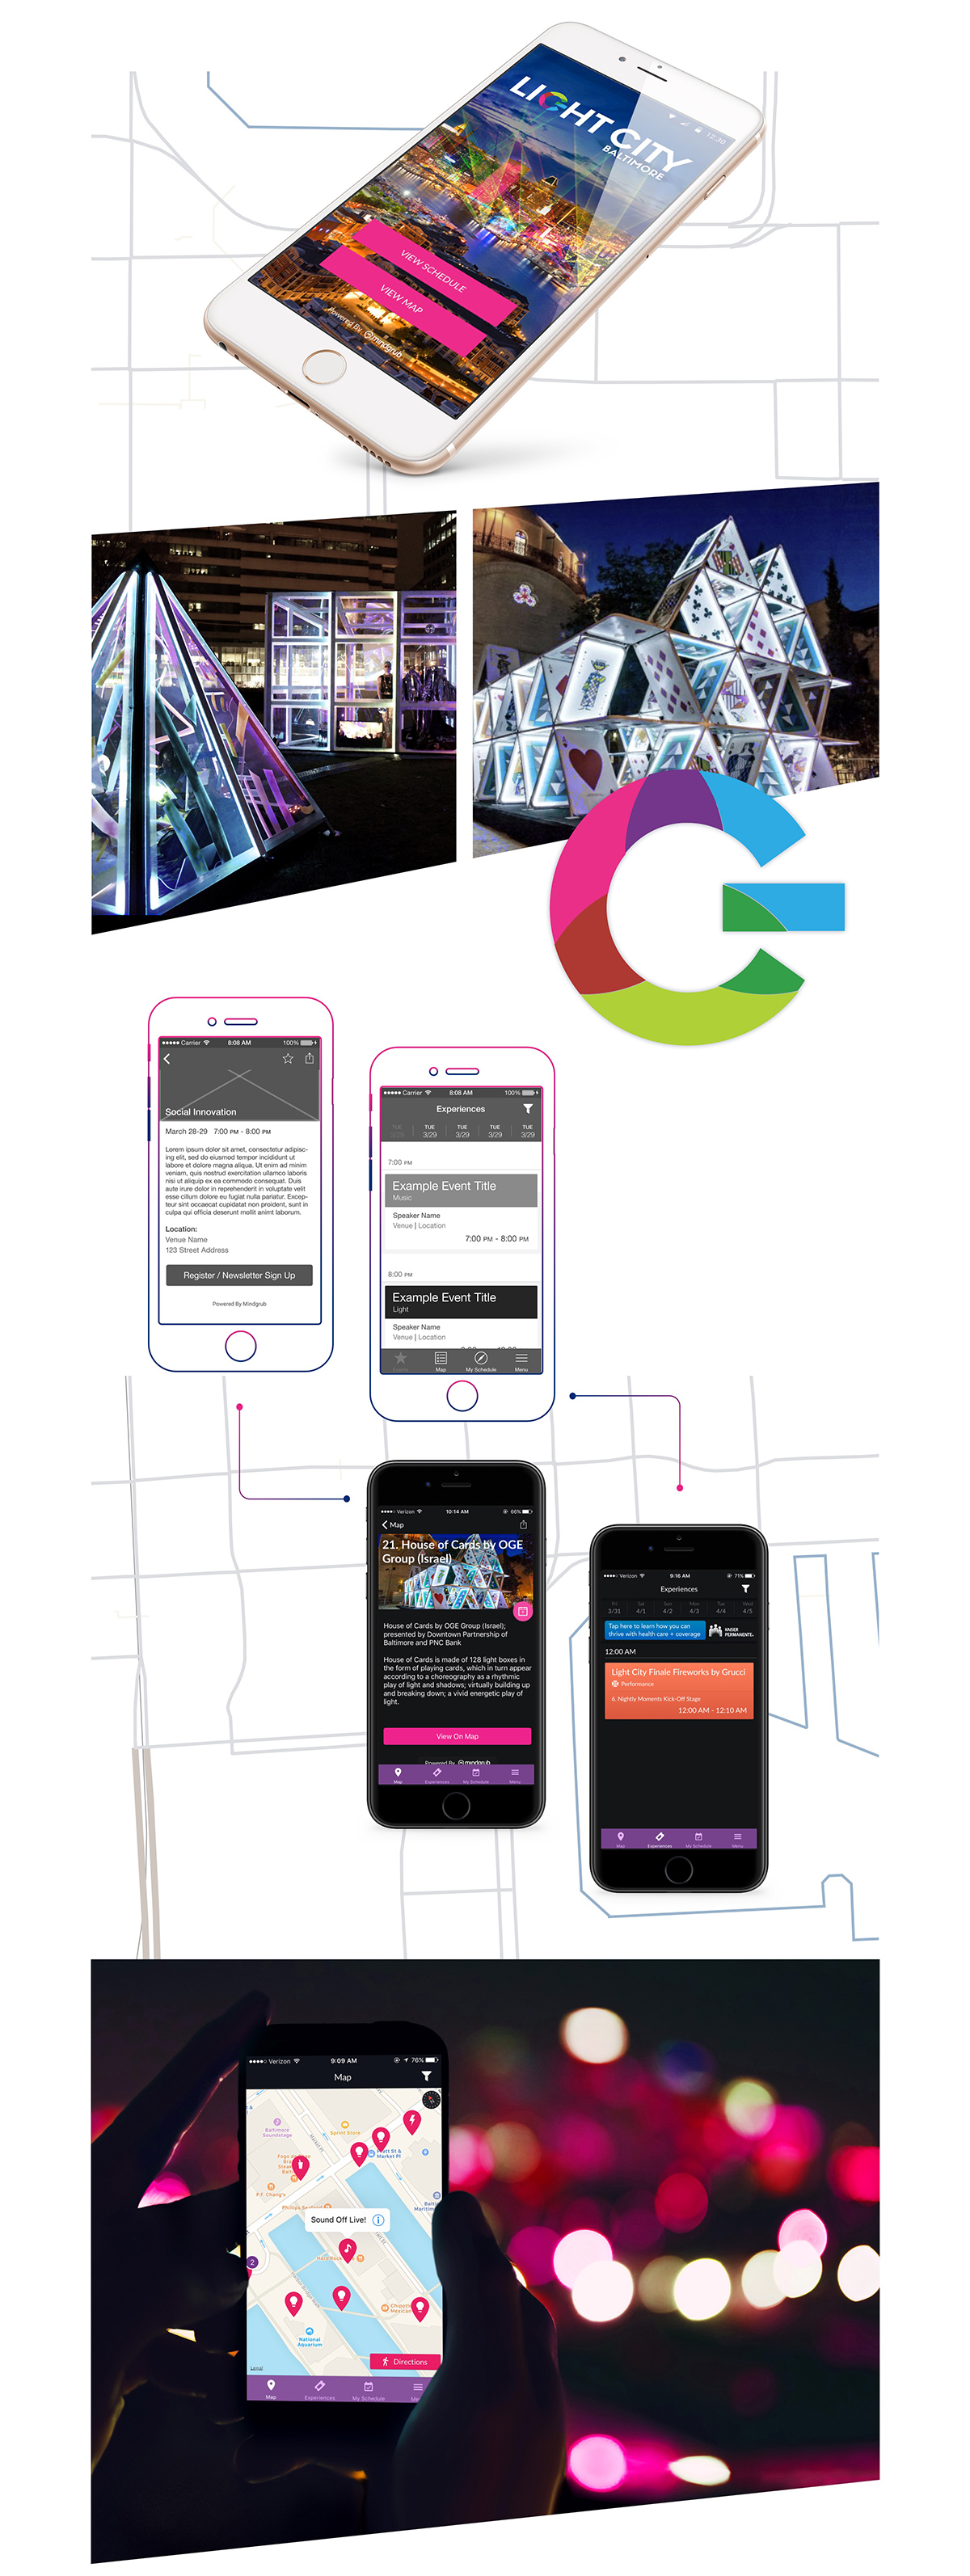 Light City mobile app displayed on smartphones.